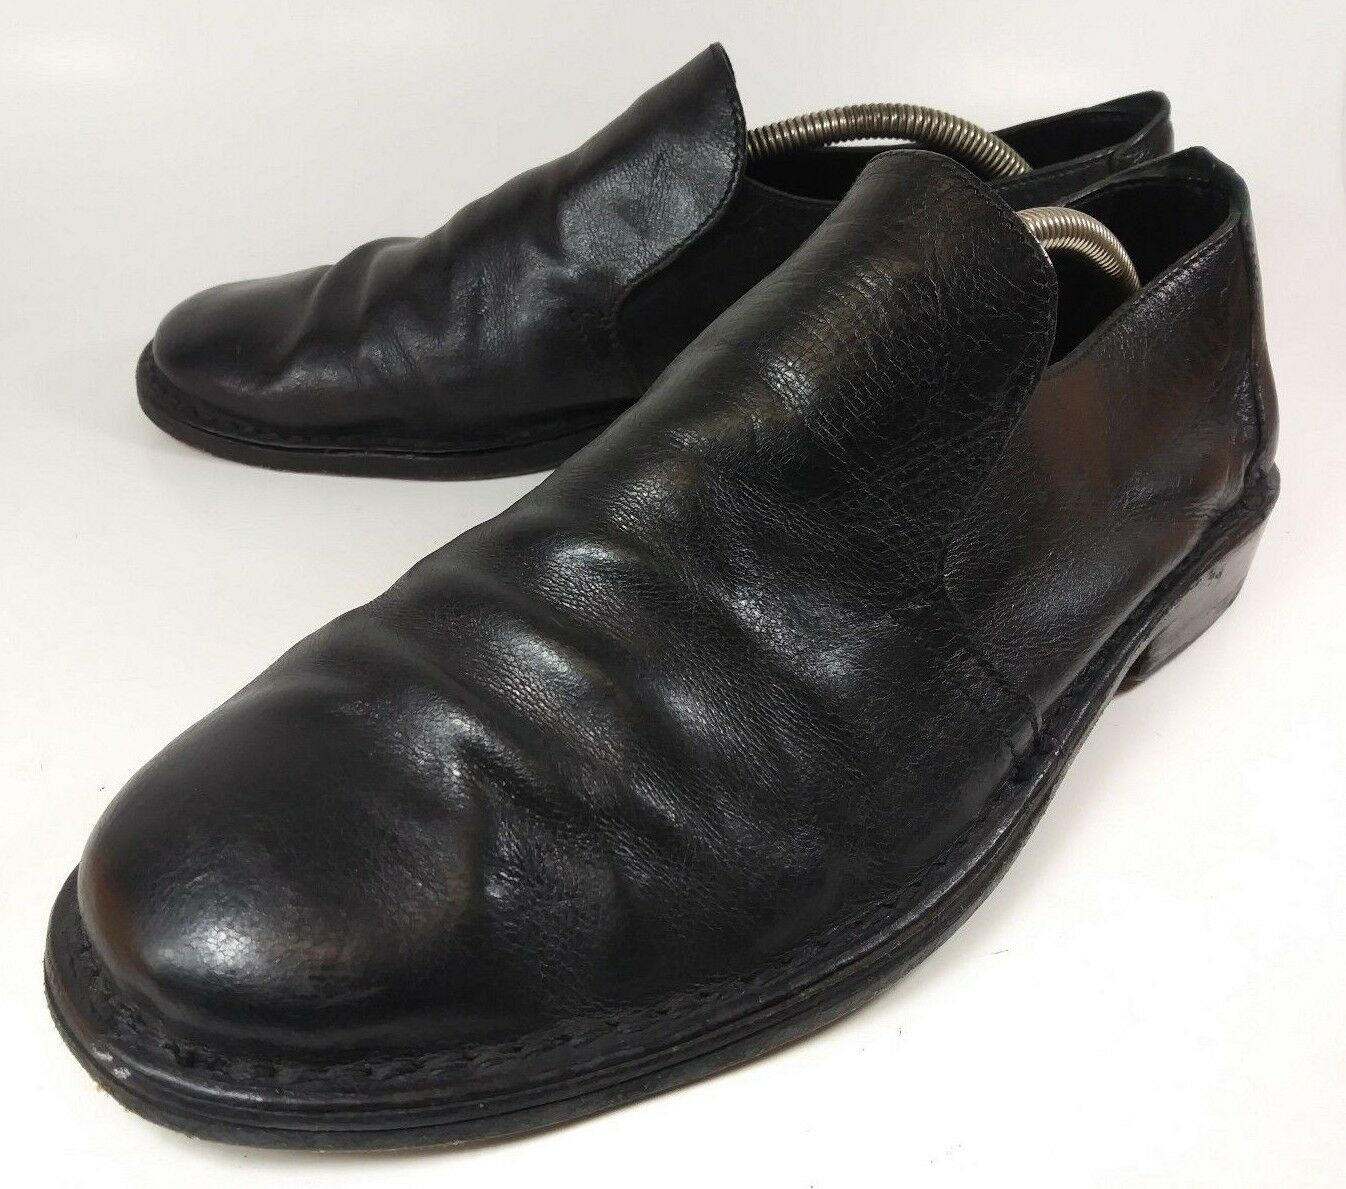 D Lepori Mens Shoes Loafers 2612 US 10.5 Black Leather Slip-On 1446